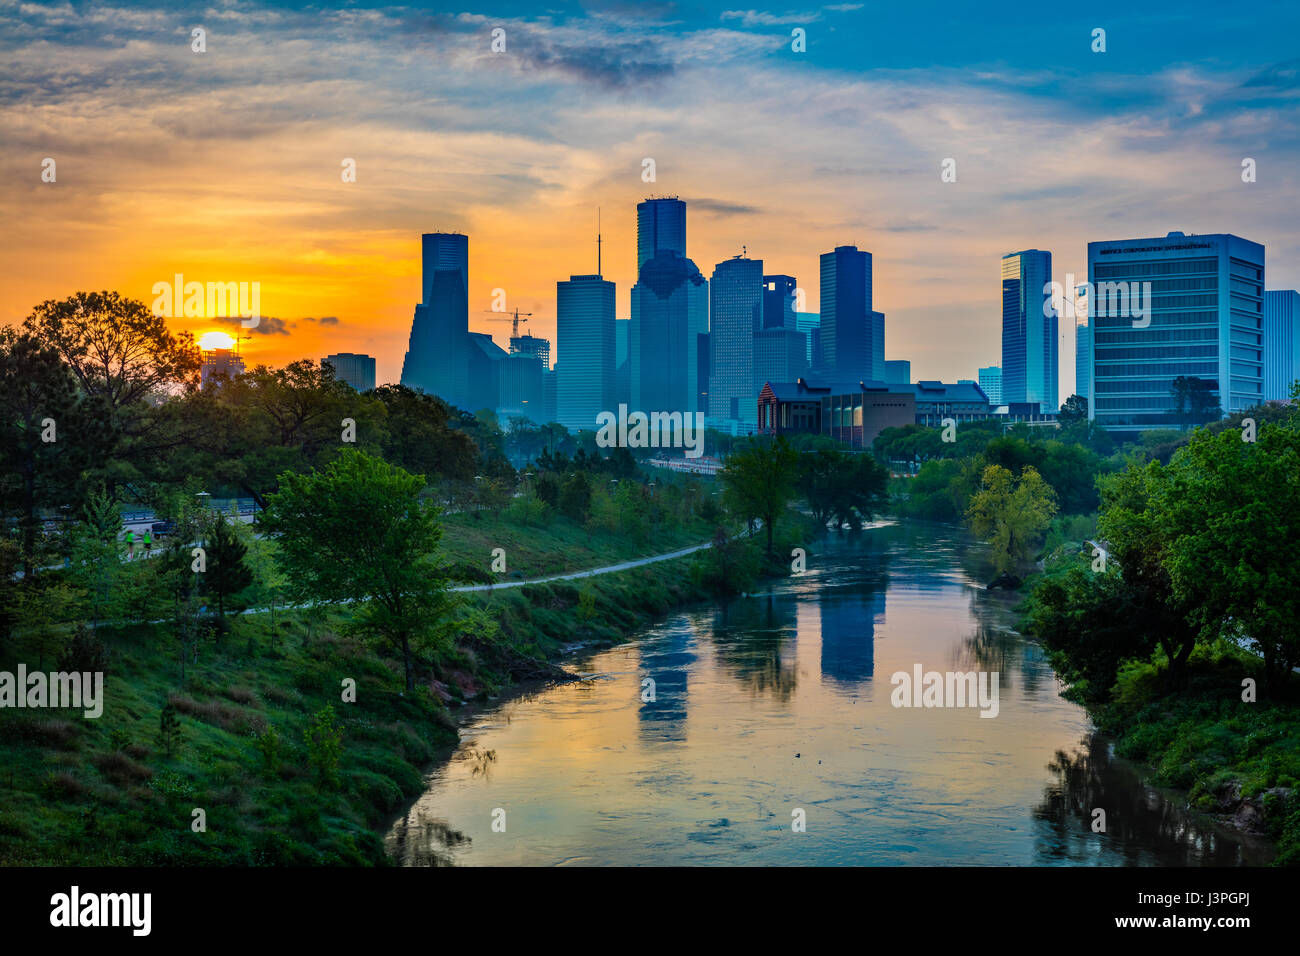 Houston is the most populous city in Texas and the fourth most populous city in the United States, located in Southeast - Stock Image